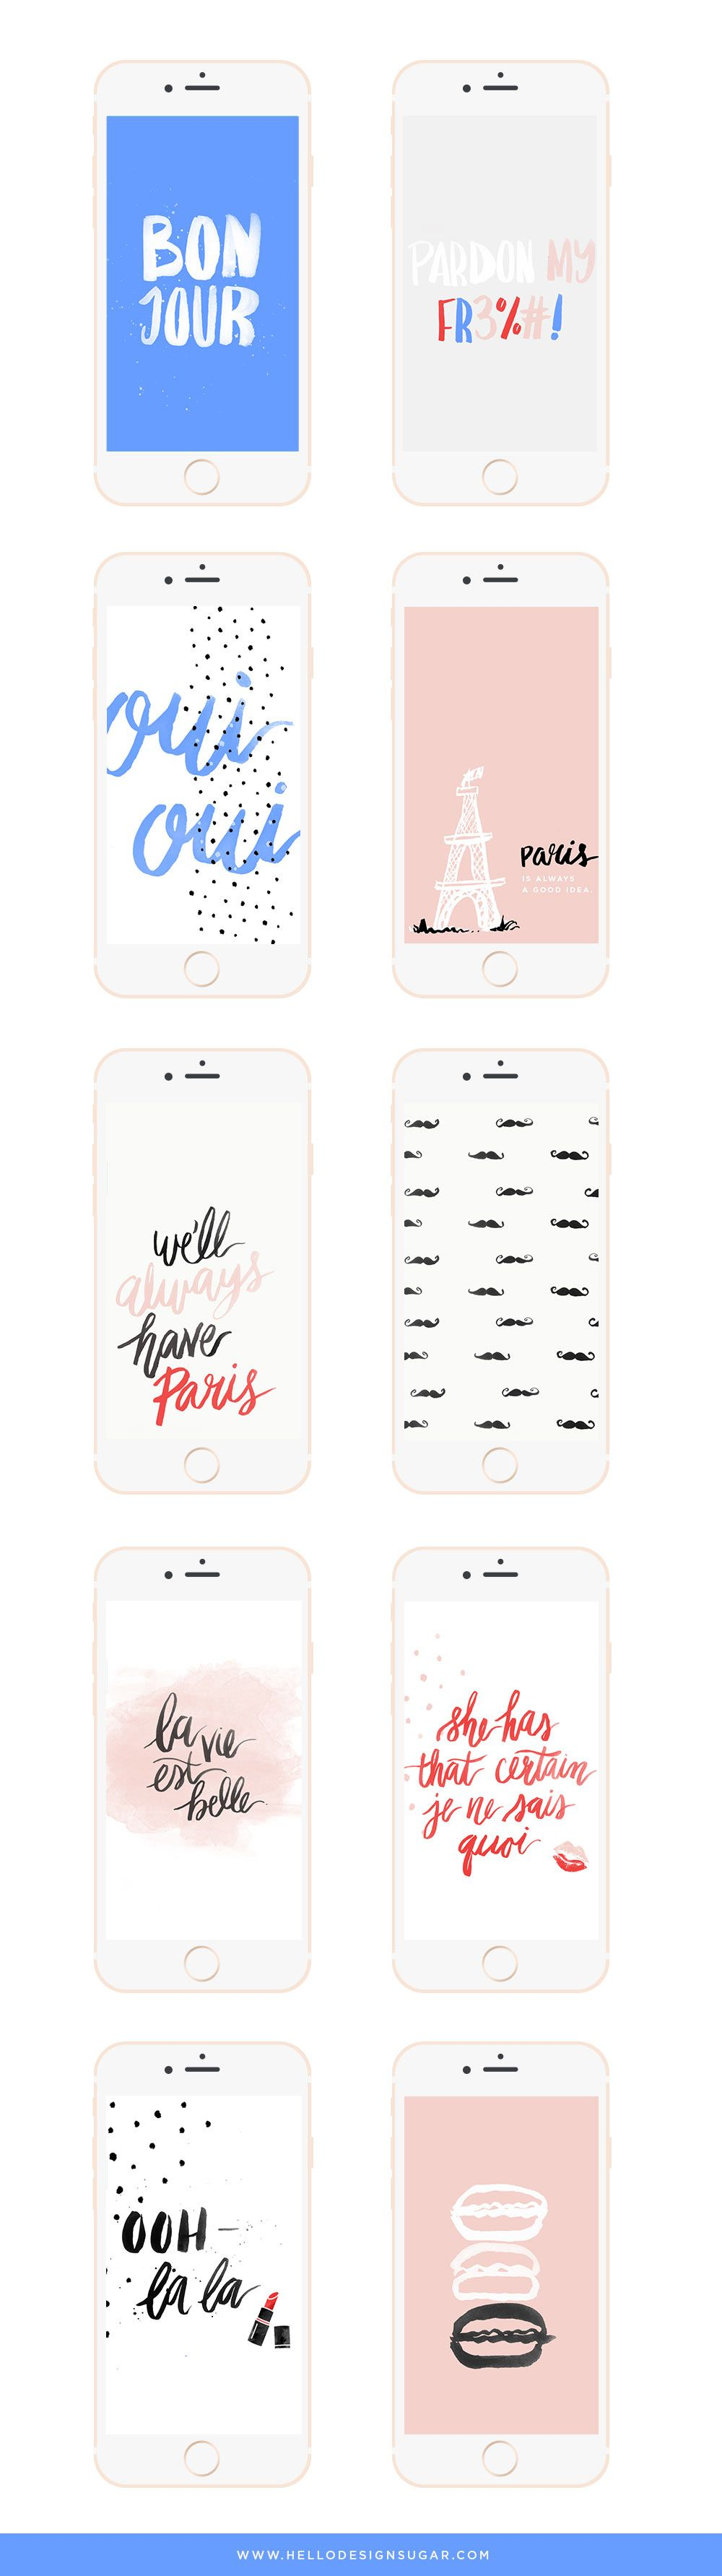 Fr fr free january 2017 desktop wallpaper - Paris Themed Wallpapers For Your Phone And Desktop